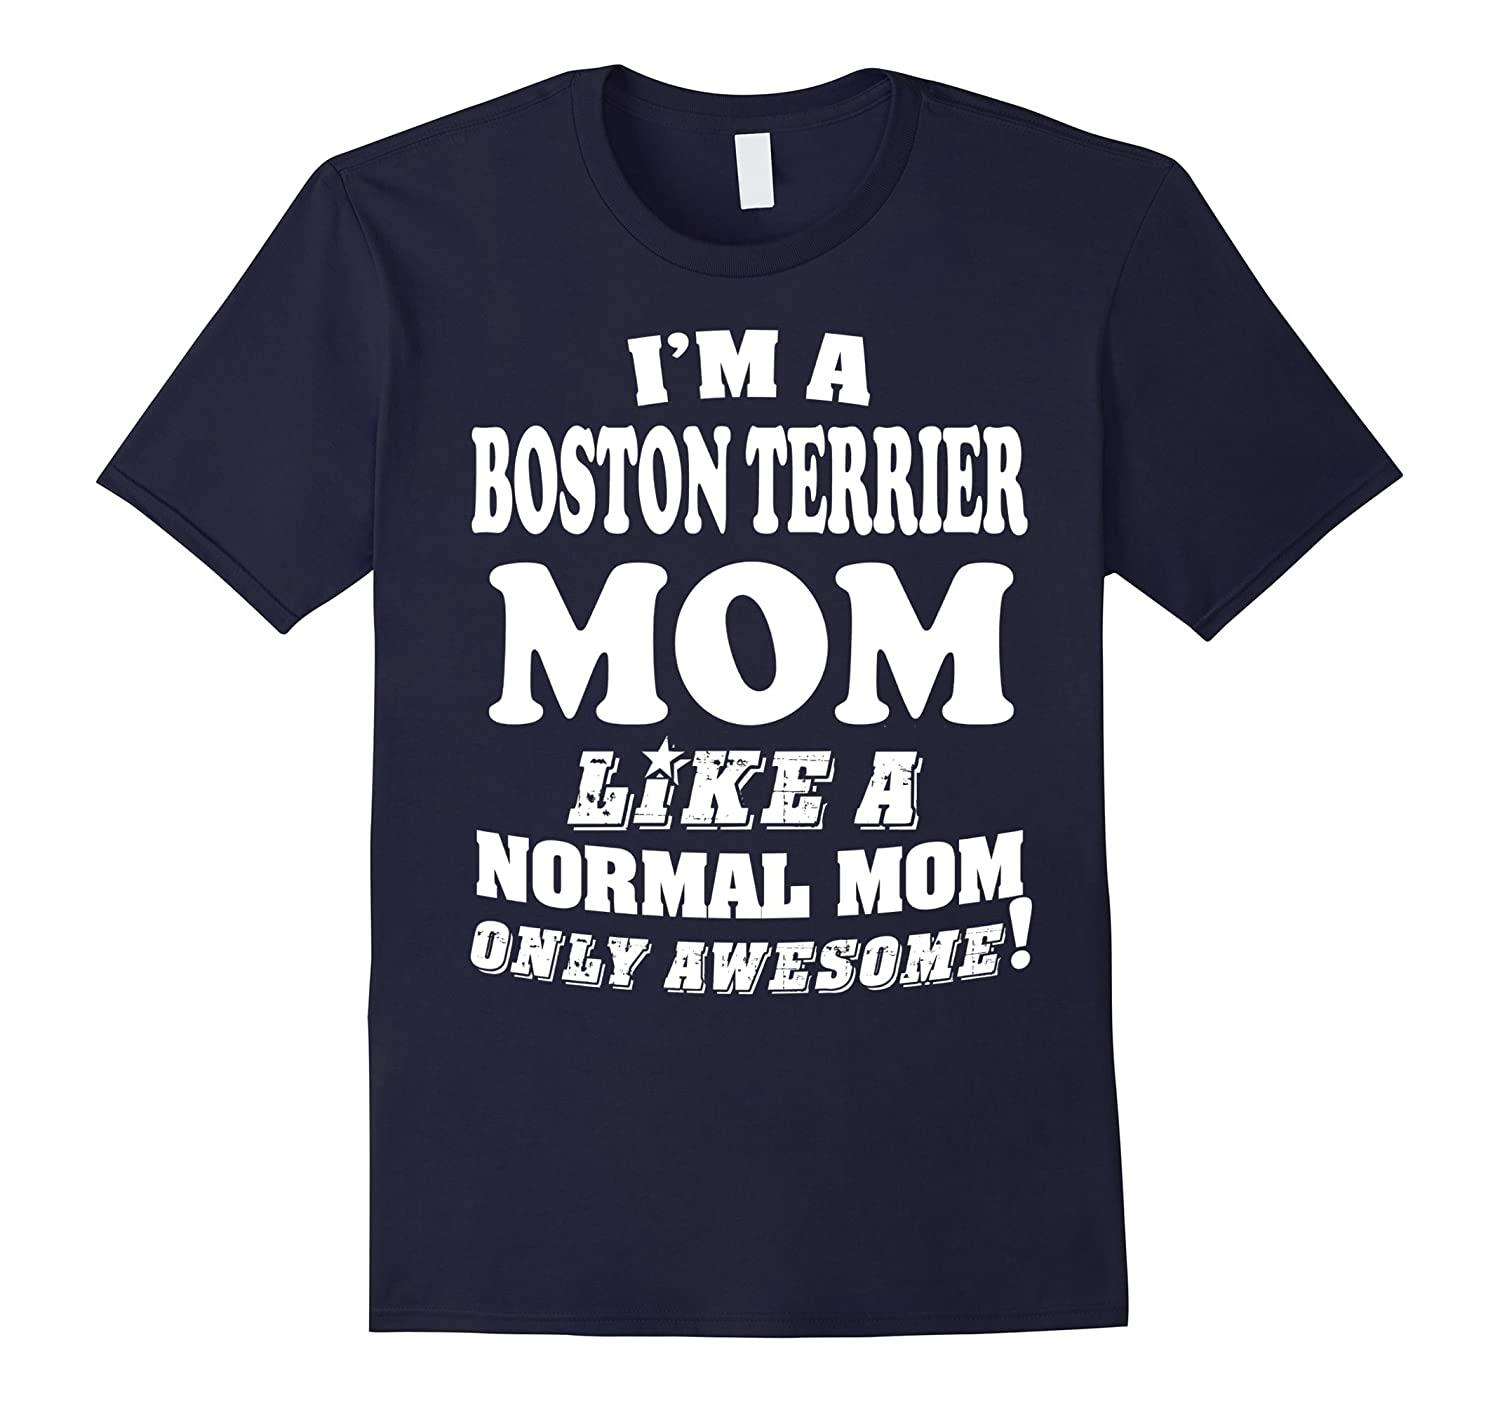 00411c30 Mother shirt Im Boston Terrier mom only awesome T shirt – Hntee.com